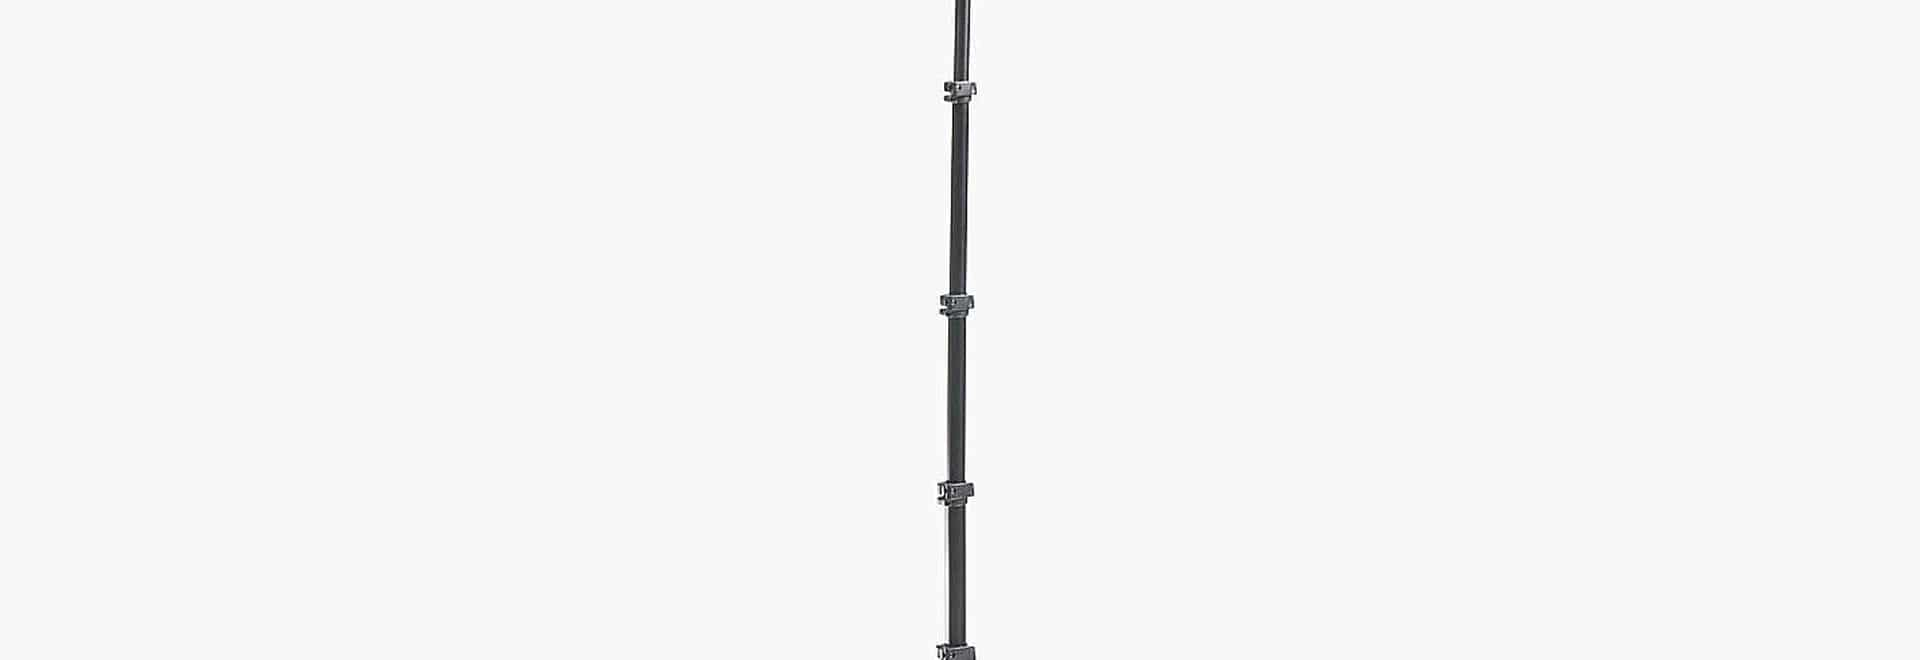 Peli´s Advanced Area Lighting Group introduces the 9490 Remote Area Lighting System (RALS)